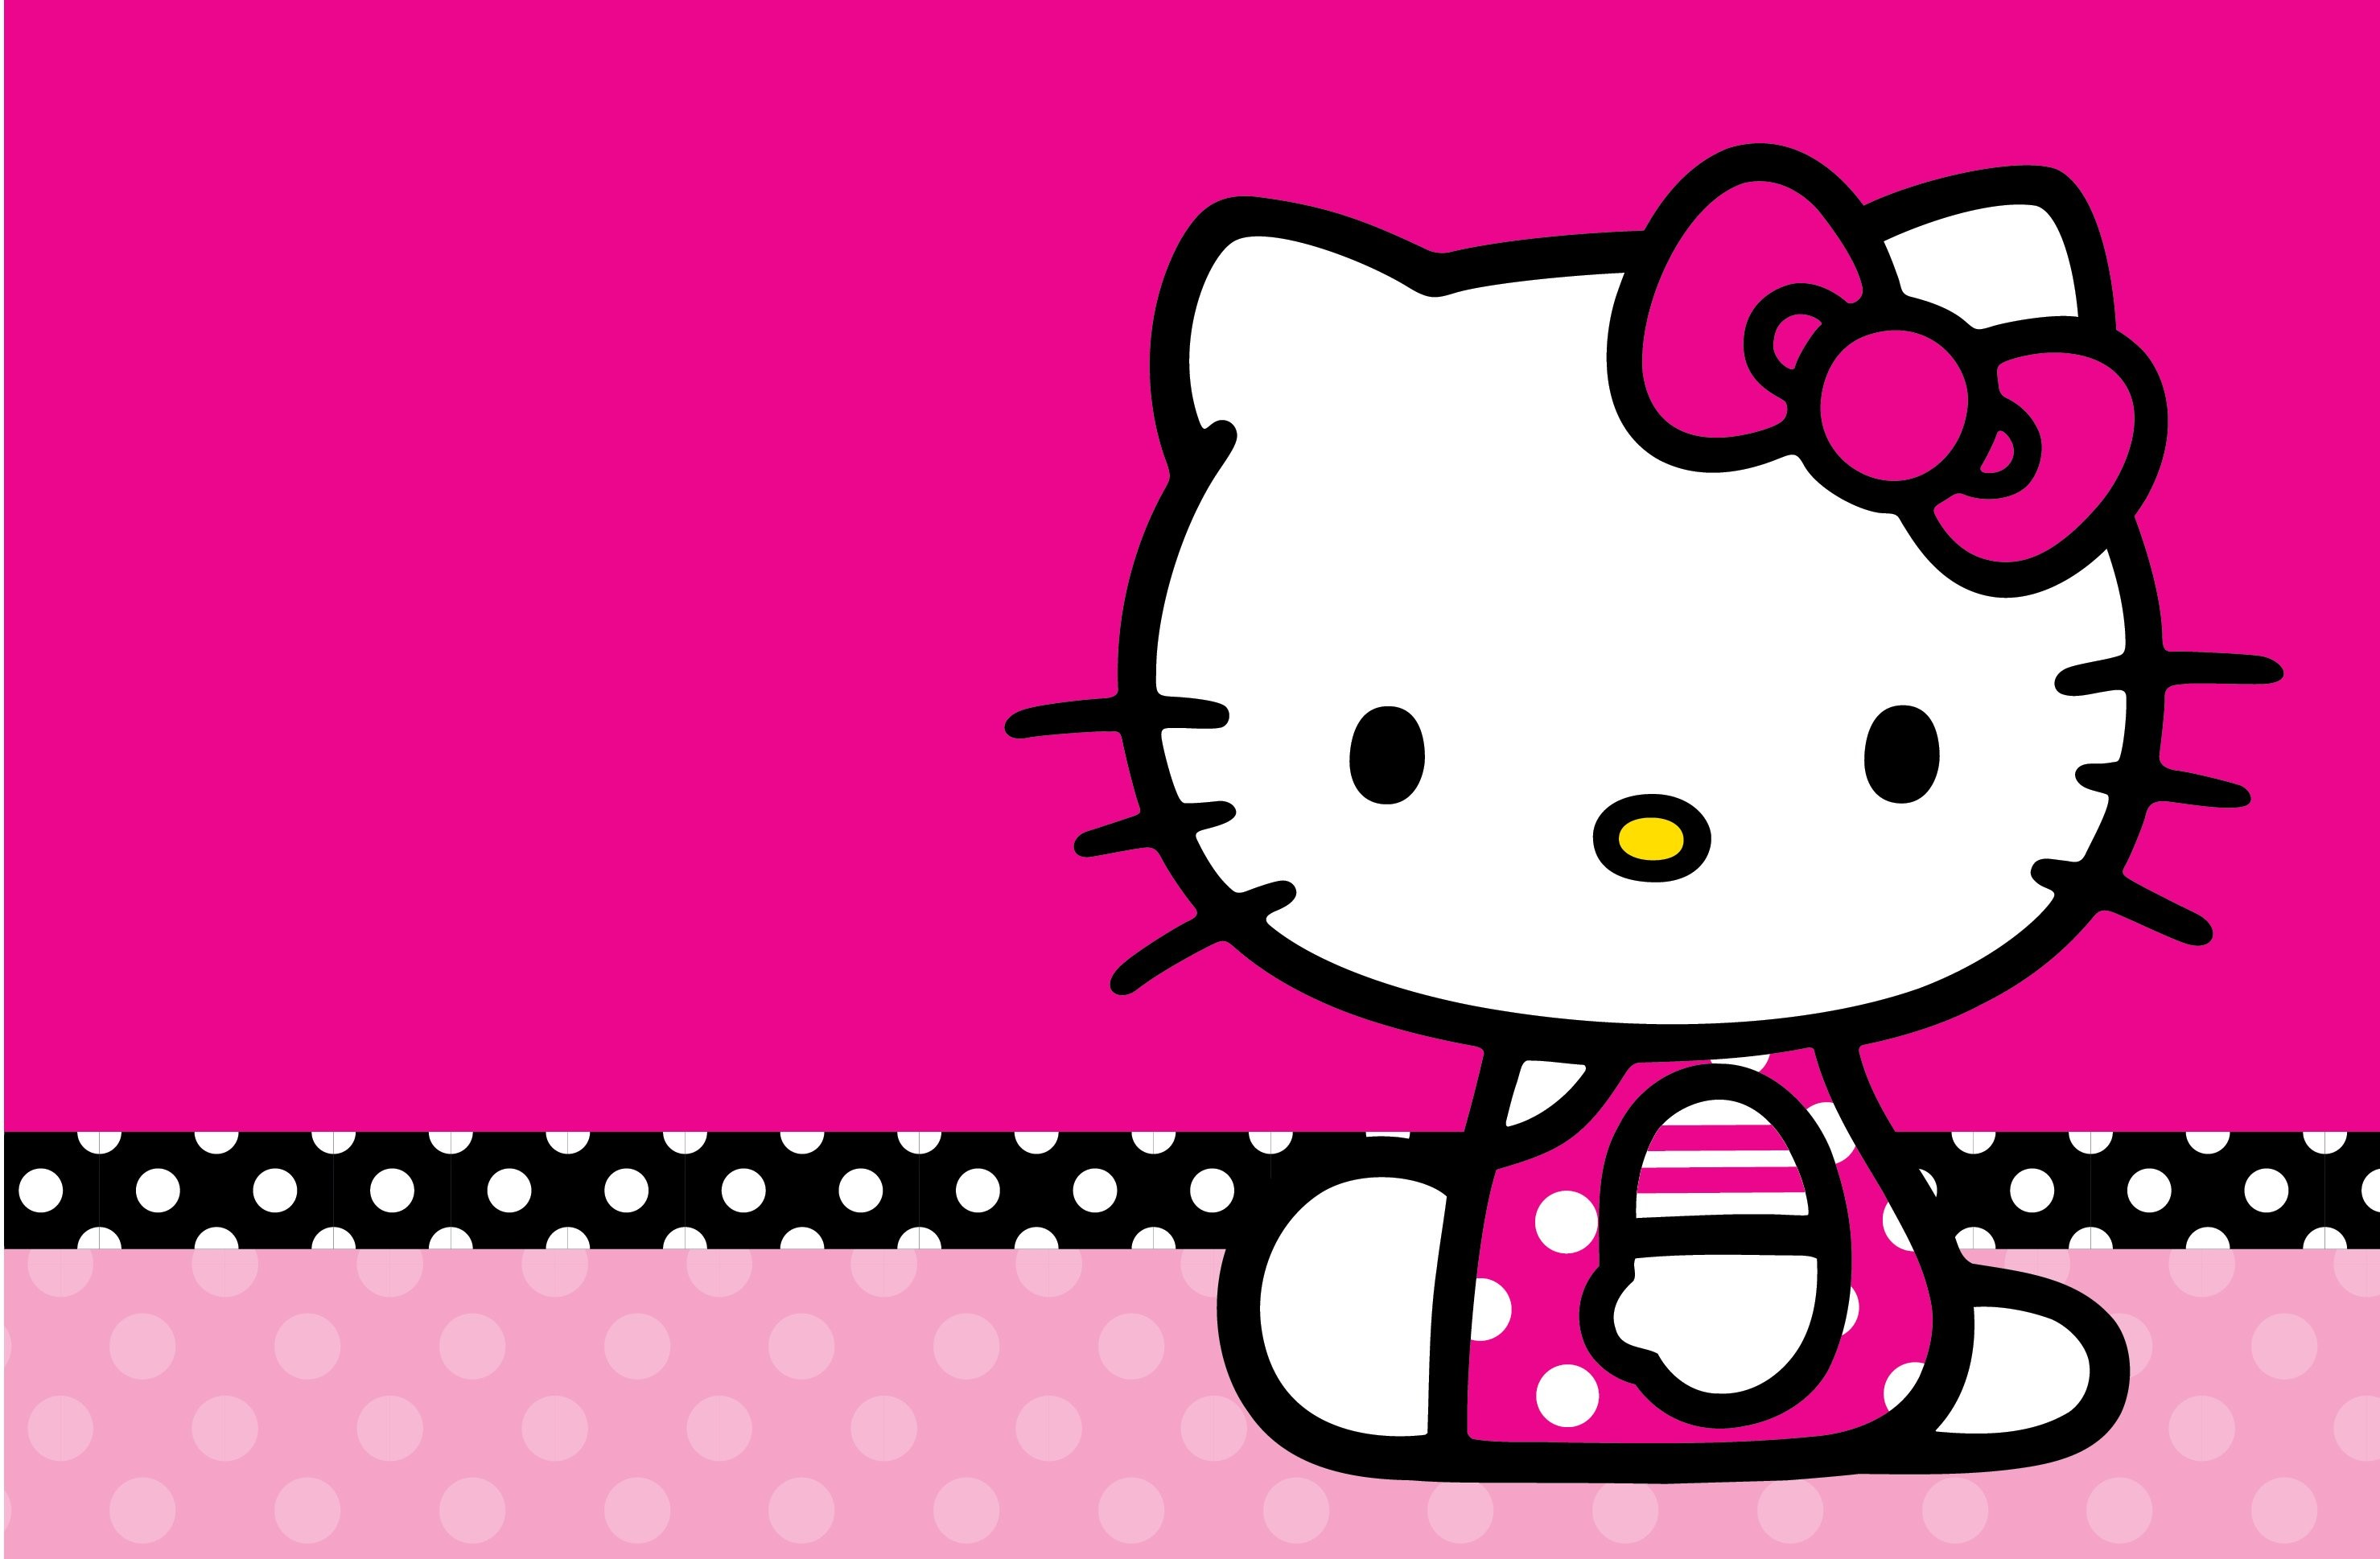 Simple Wallpaper Hello Kitty Autumn - 942051-widescreen-hello-kitty-fall-wallpaper-2958x1938-large-resolution  Pictures_47694.jpg